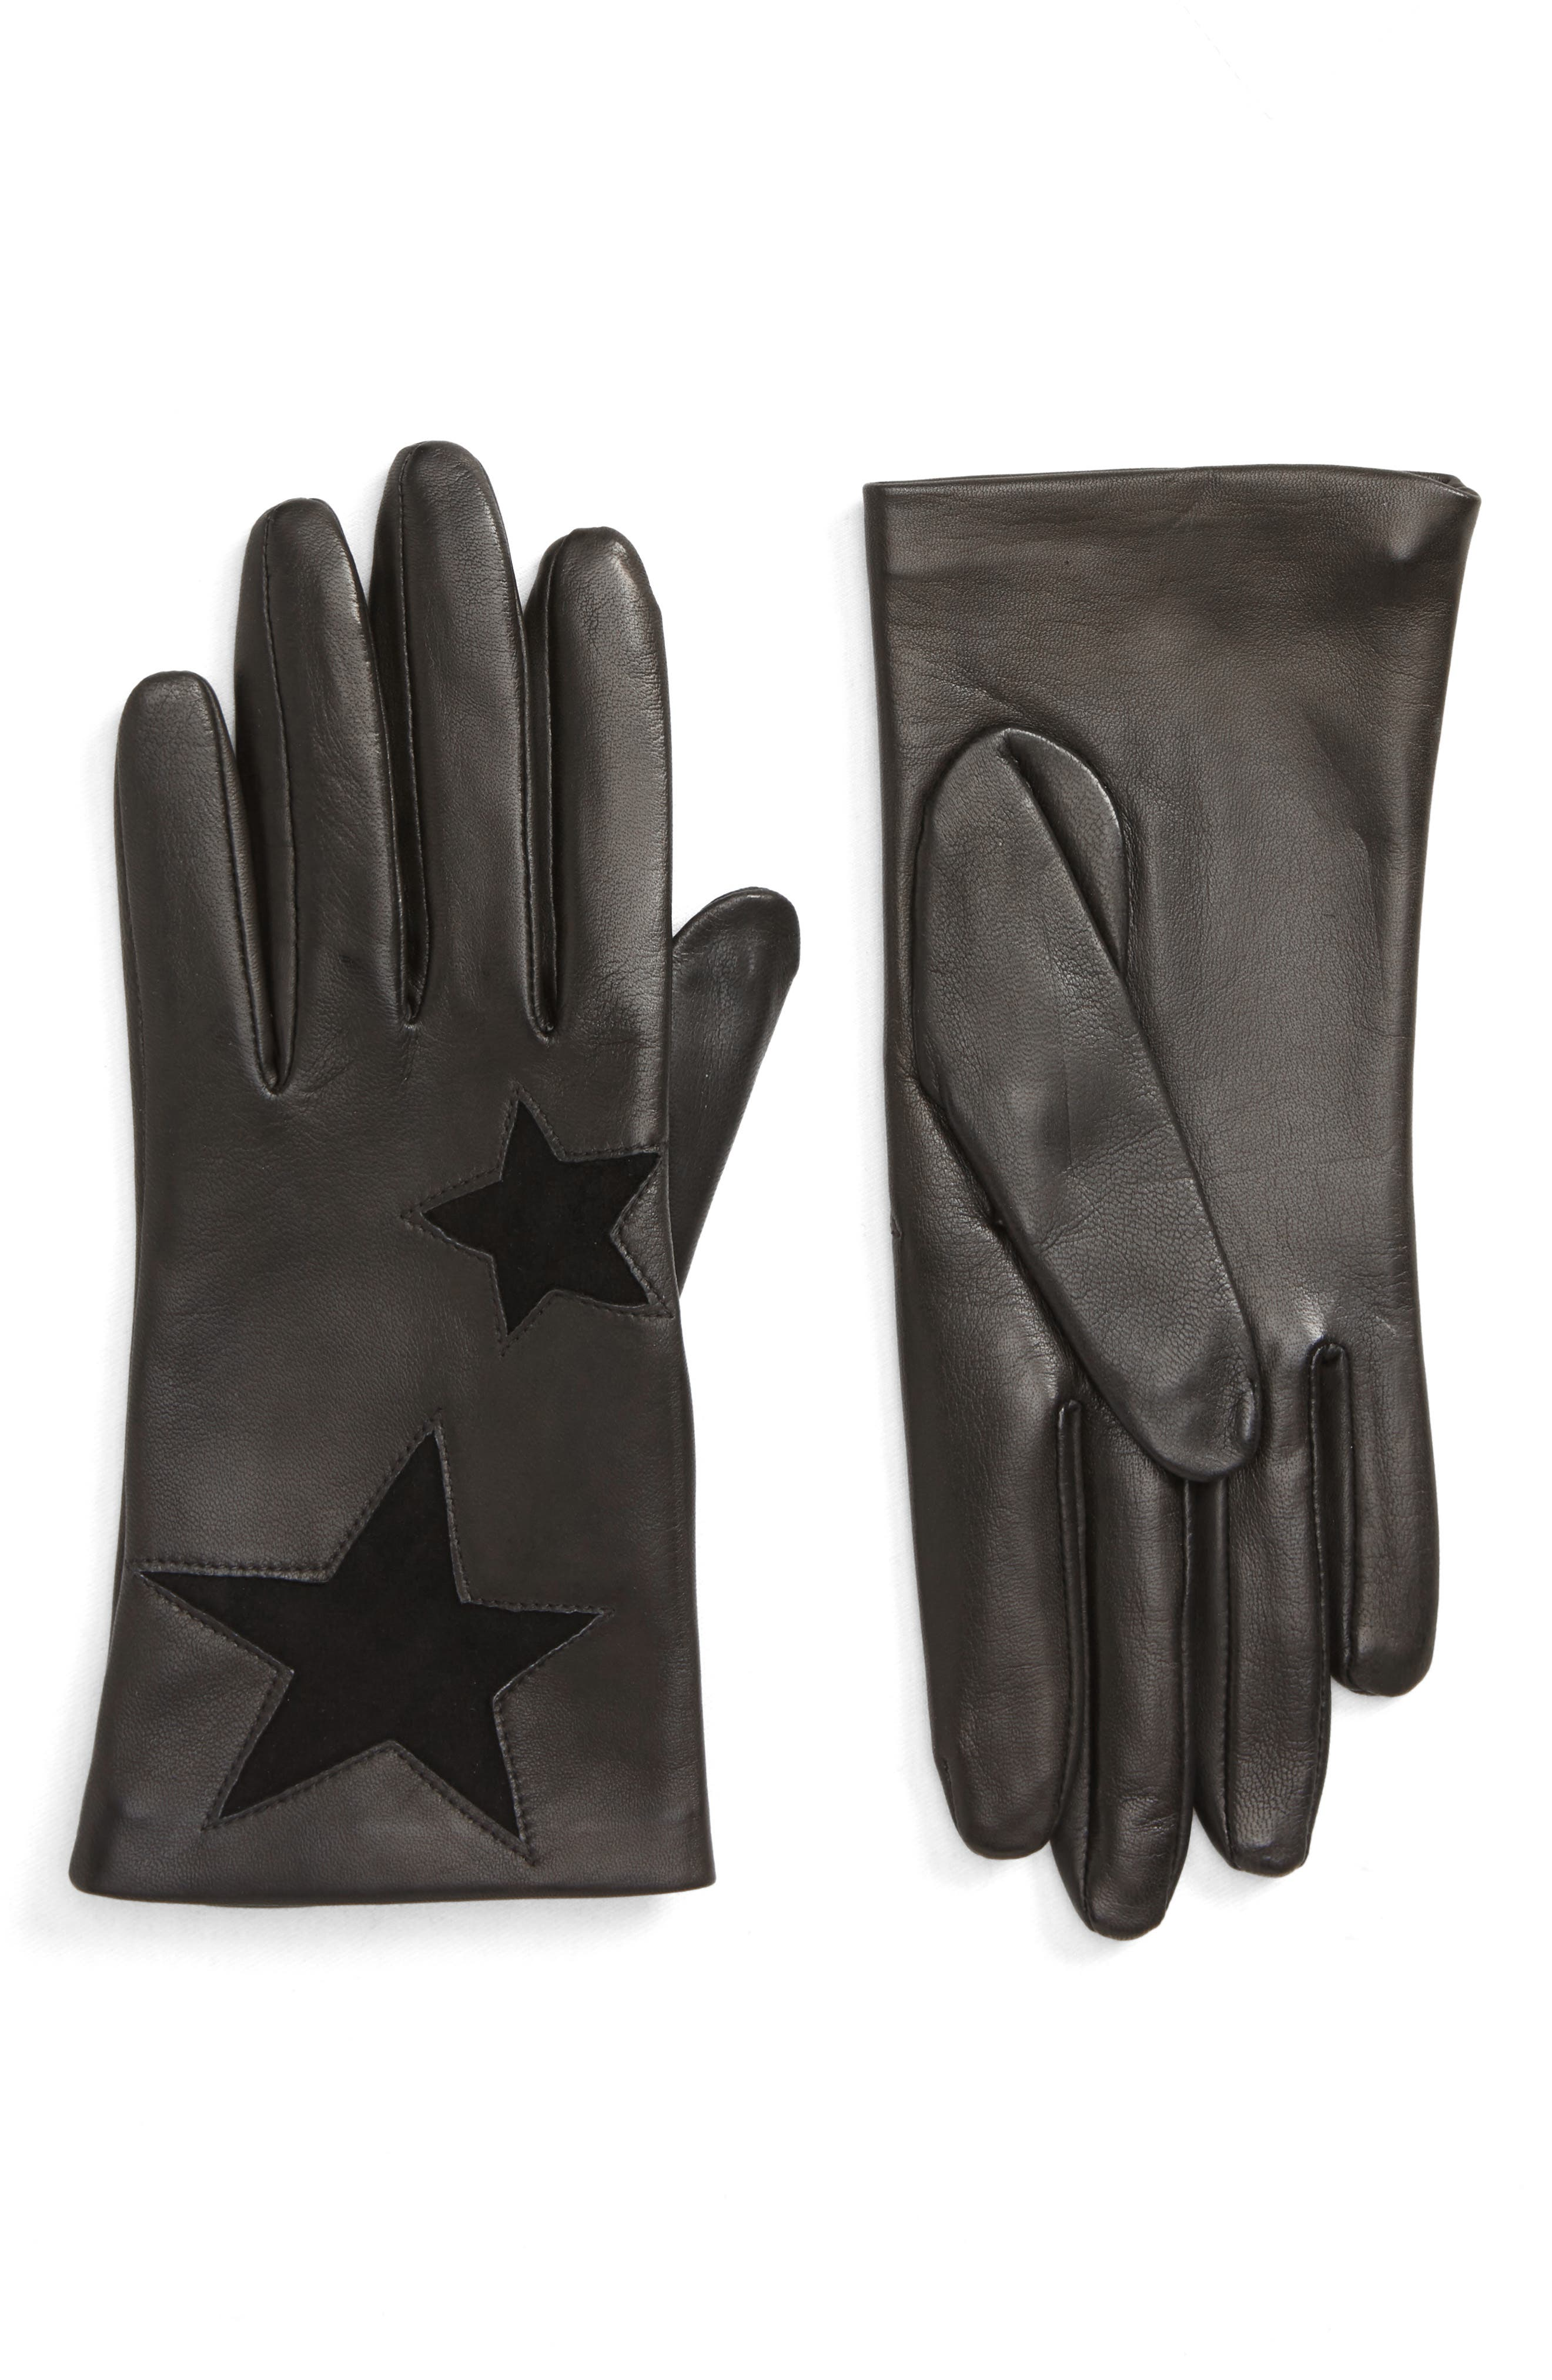 NORDSTROM,                             Star Lambskin Leather Gloves,                             Main thumbnail 1, color,                             001